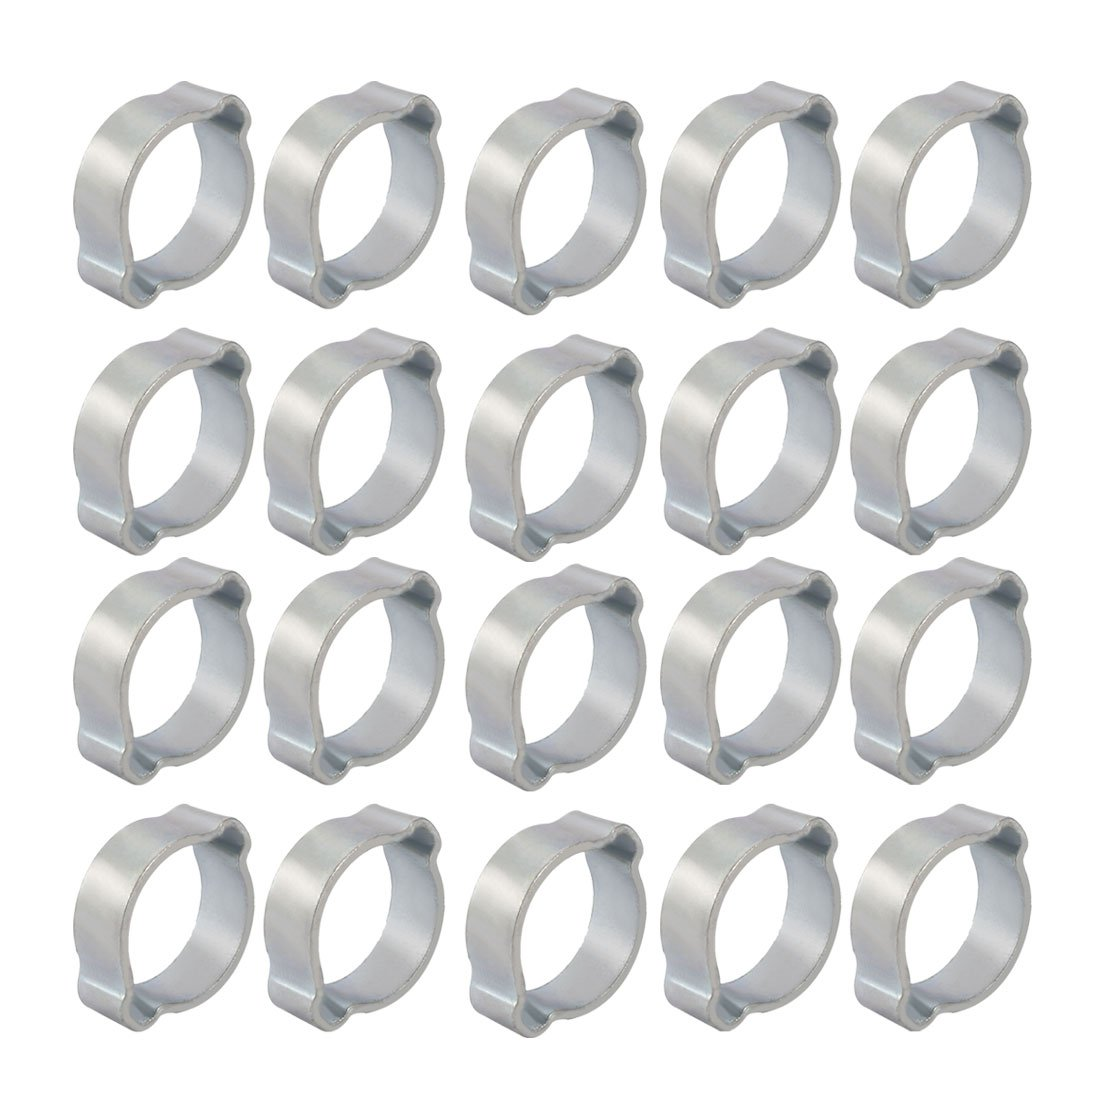 uxcell 20 Pcs Zinc Plated Iron 15mm-18mm 2-Ear Hose Clamp for Fuel Air Water Pipe